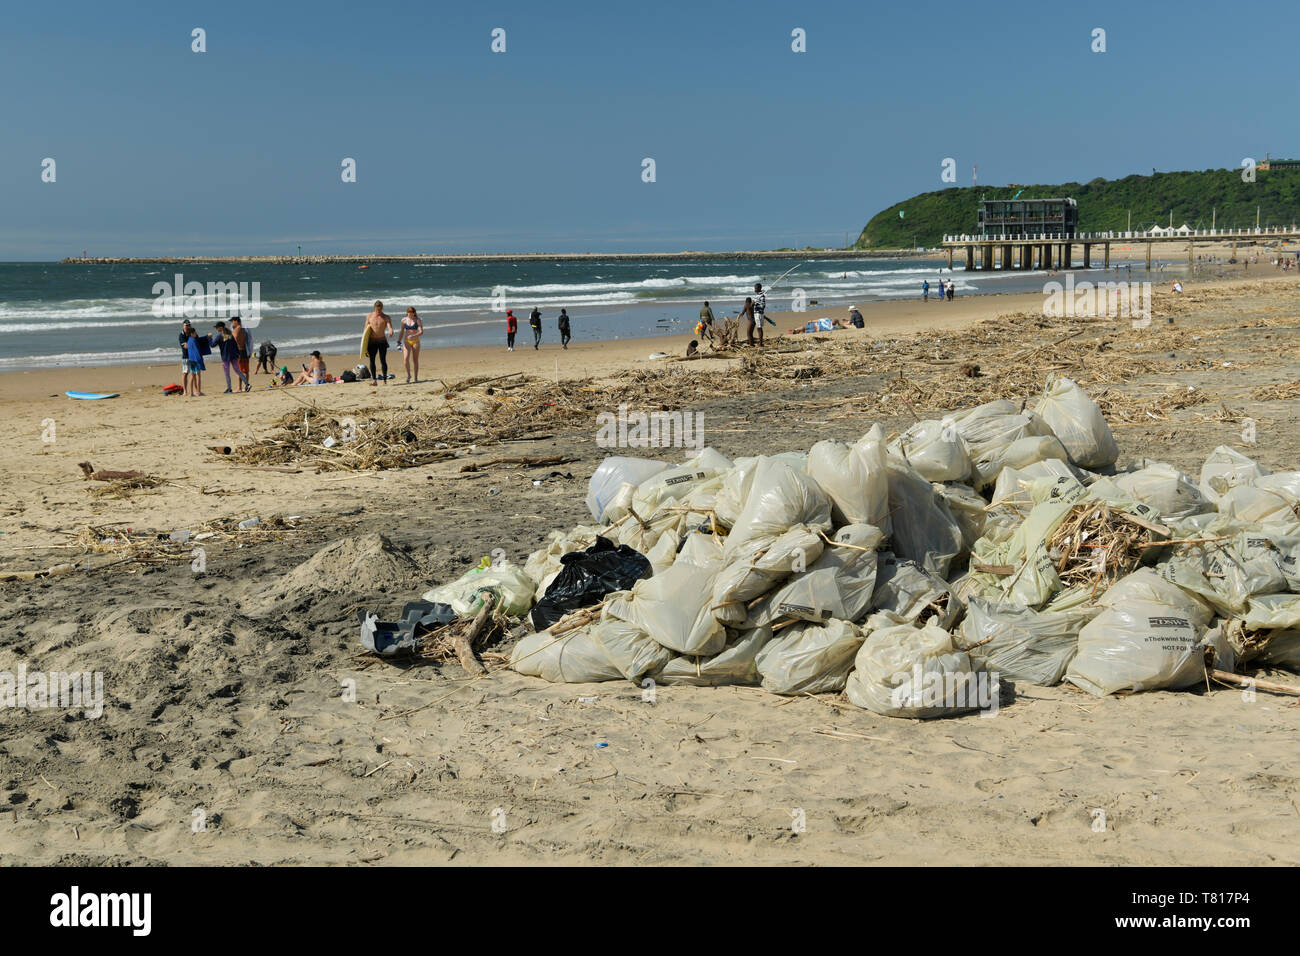 Durban, South Africa, collection of plastic bags lying in heap, beach cleaning in progress after April, 2019, storm damage, people, landscape, city - Stock Image